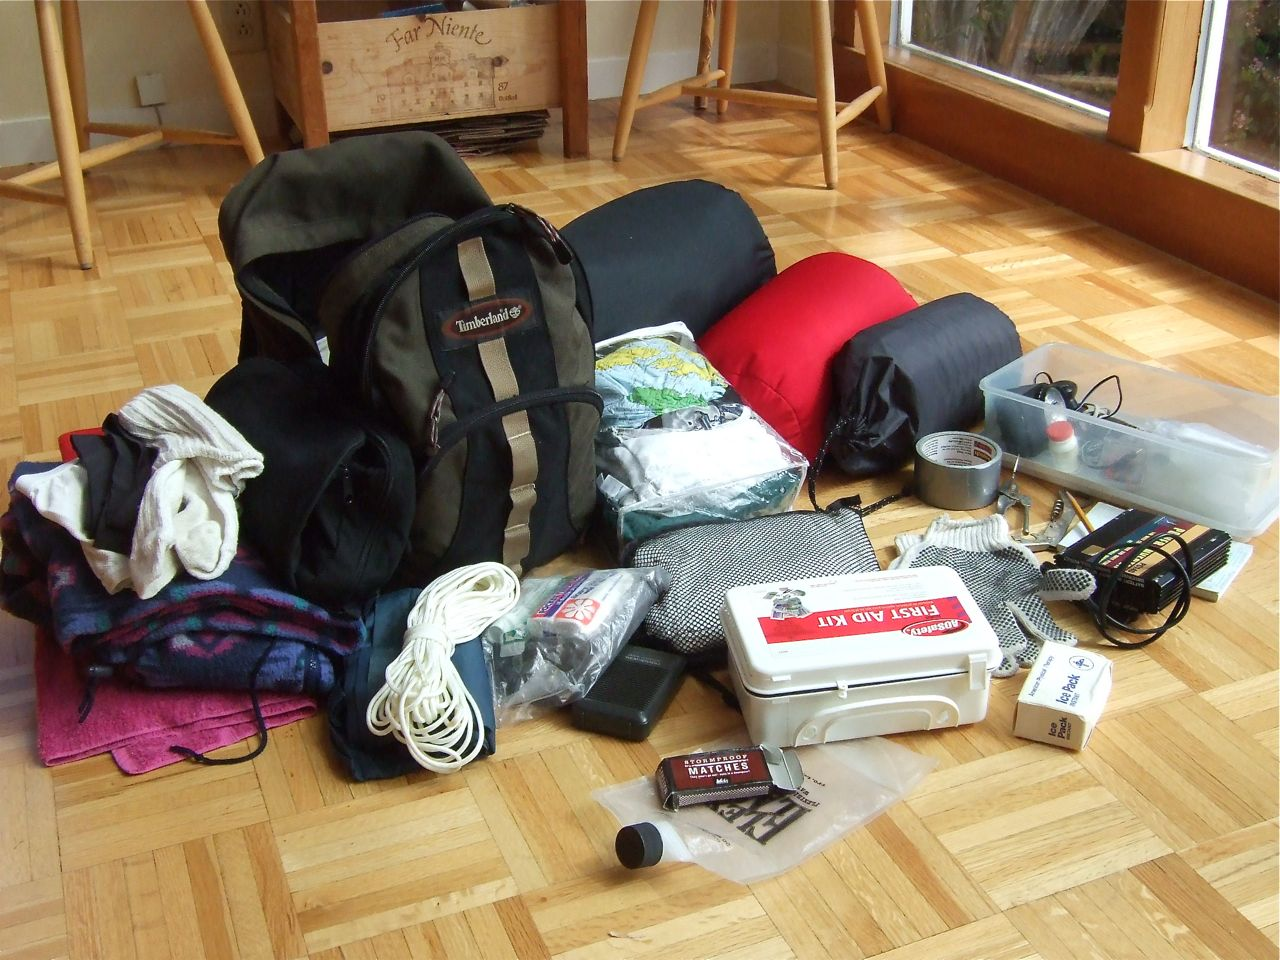 Prepare your earthquake kit now, so you will have it ready when it's needed. (Earthworm/Flickr)